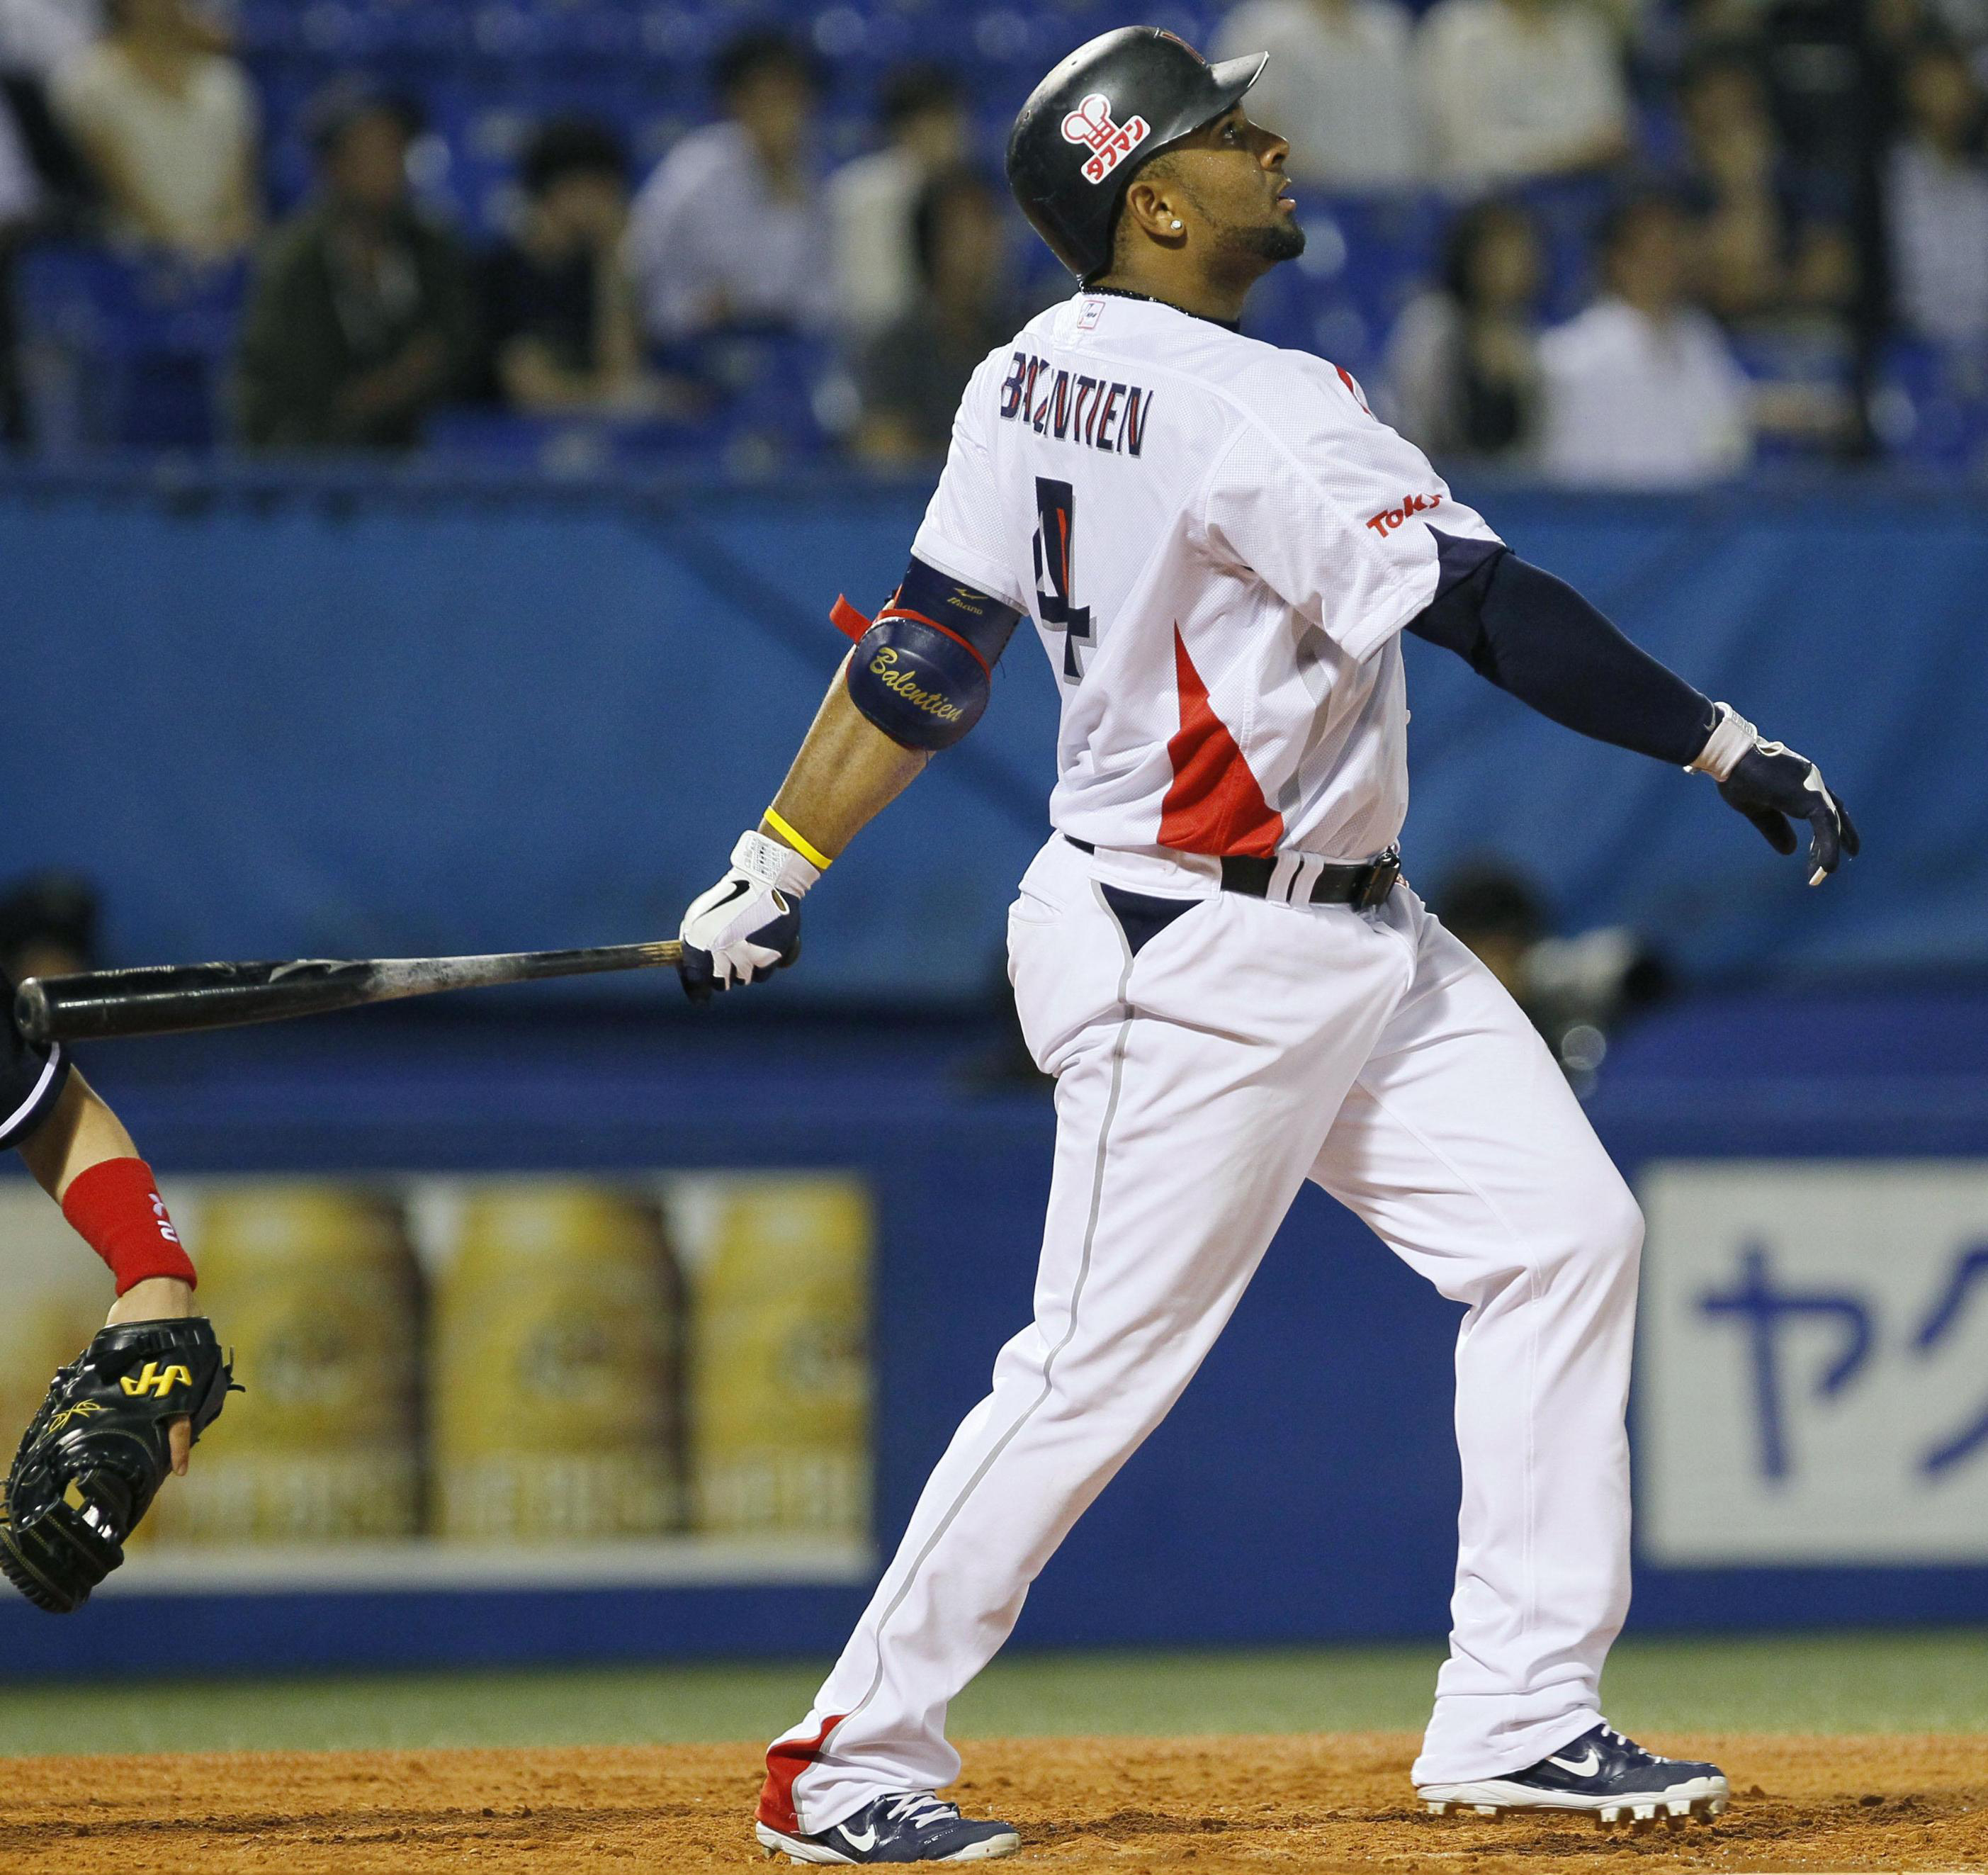 Feeling it: Tokyo Yakult's Wladimir Balentien, who hit three homers Wednesday against Chunichi, leads the NPB with 24 home runs this season. | KYODO